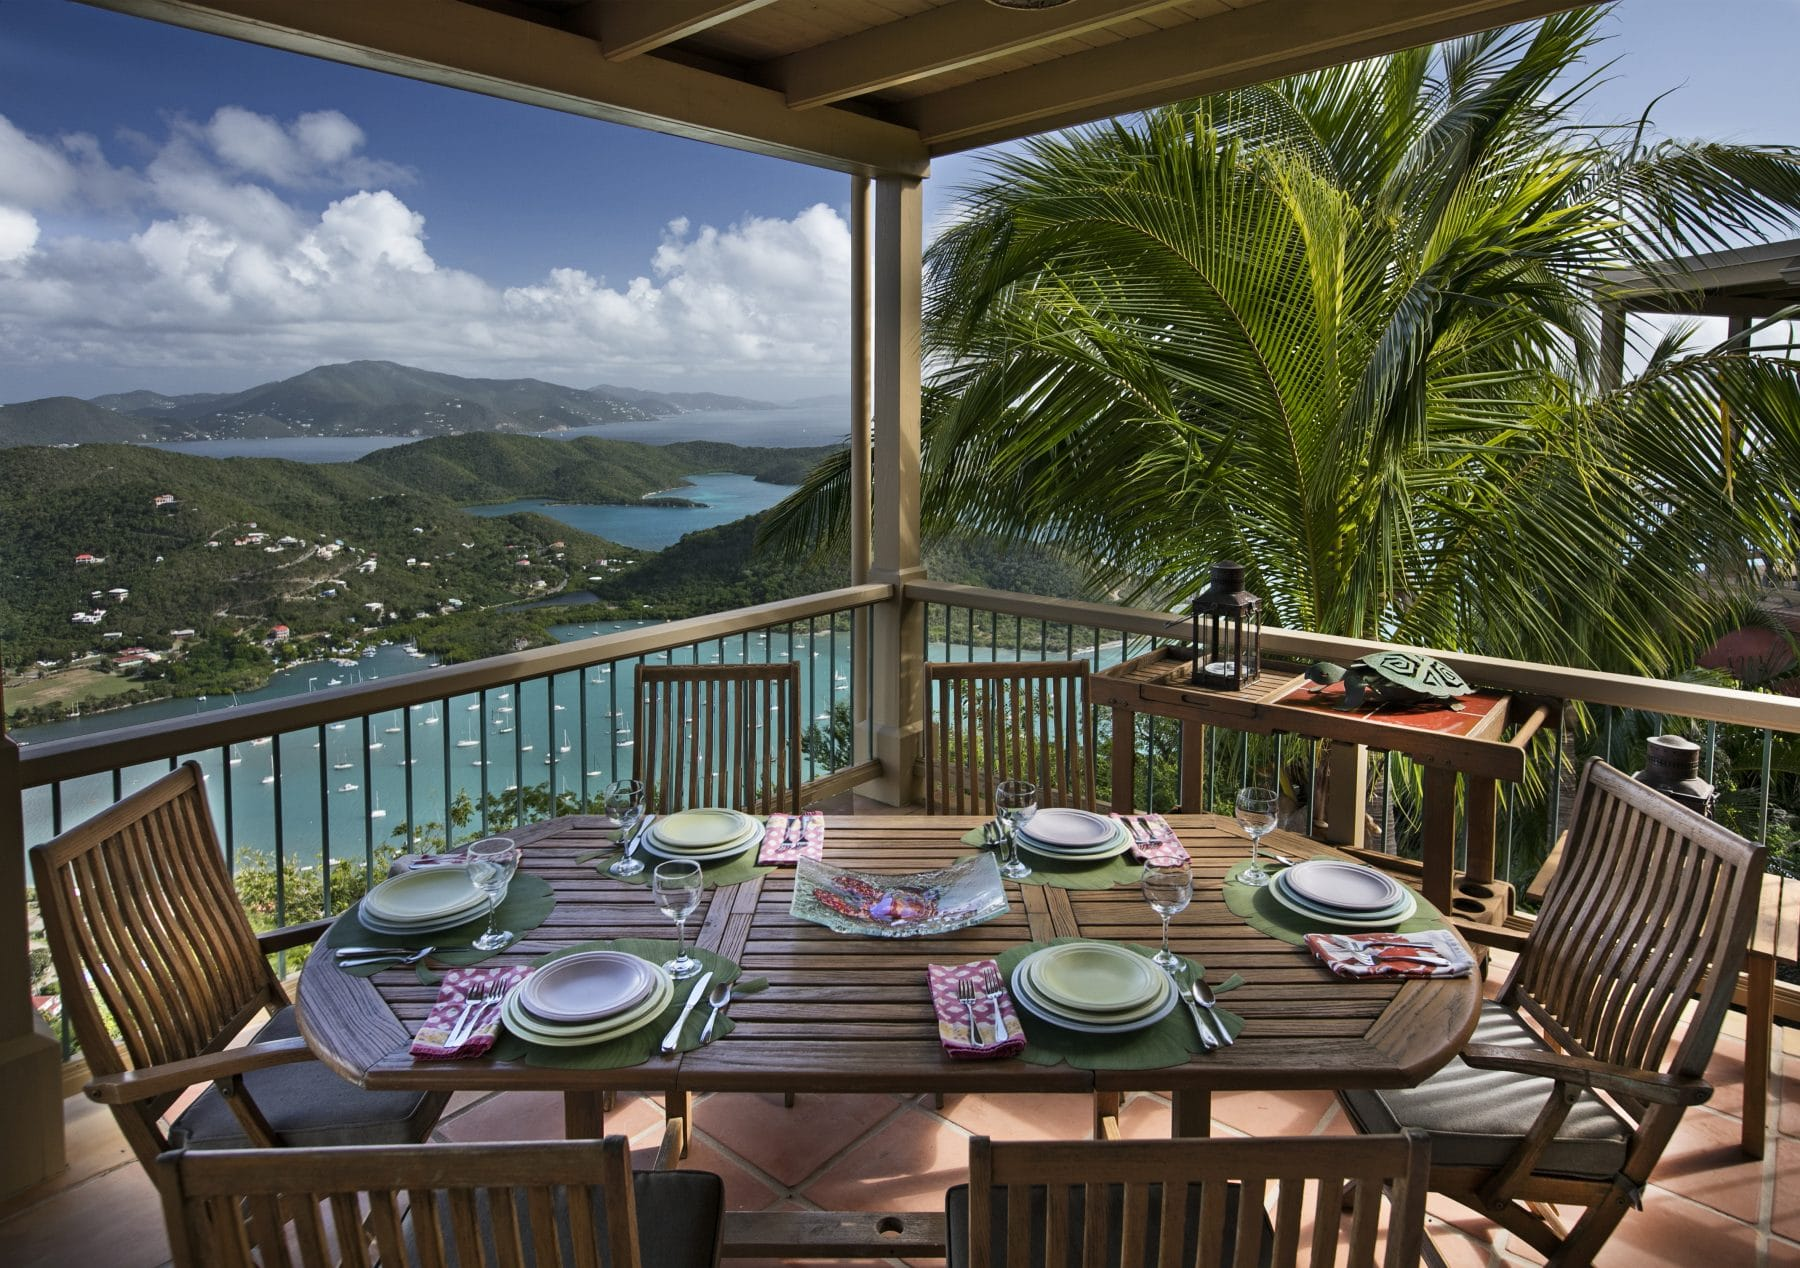 virgin islands rentals LeMer dining